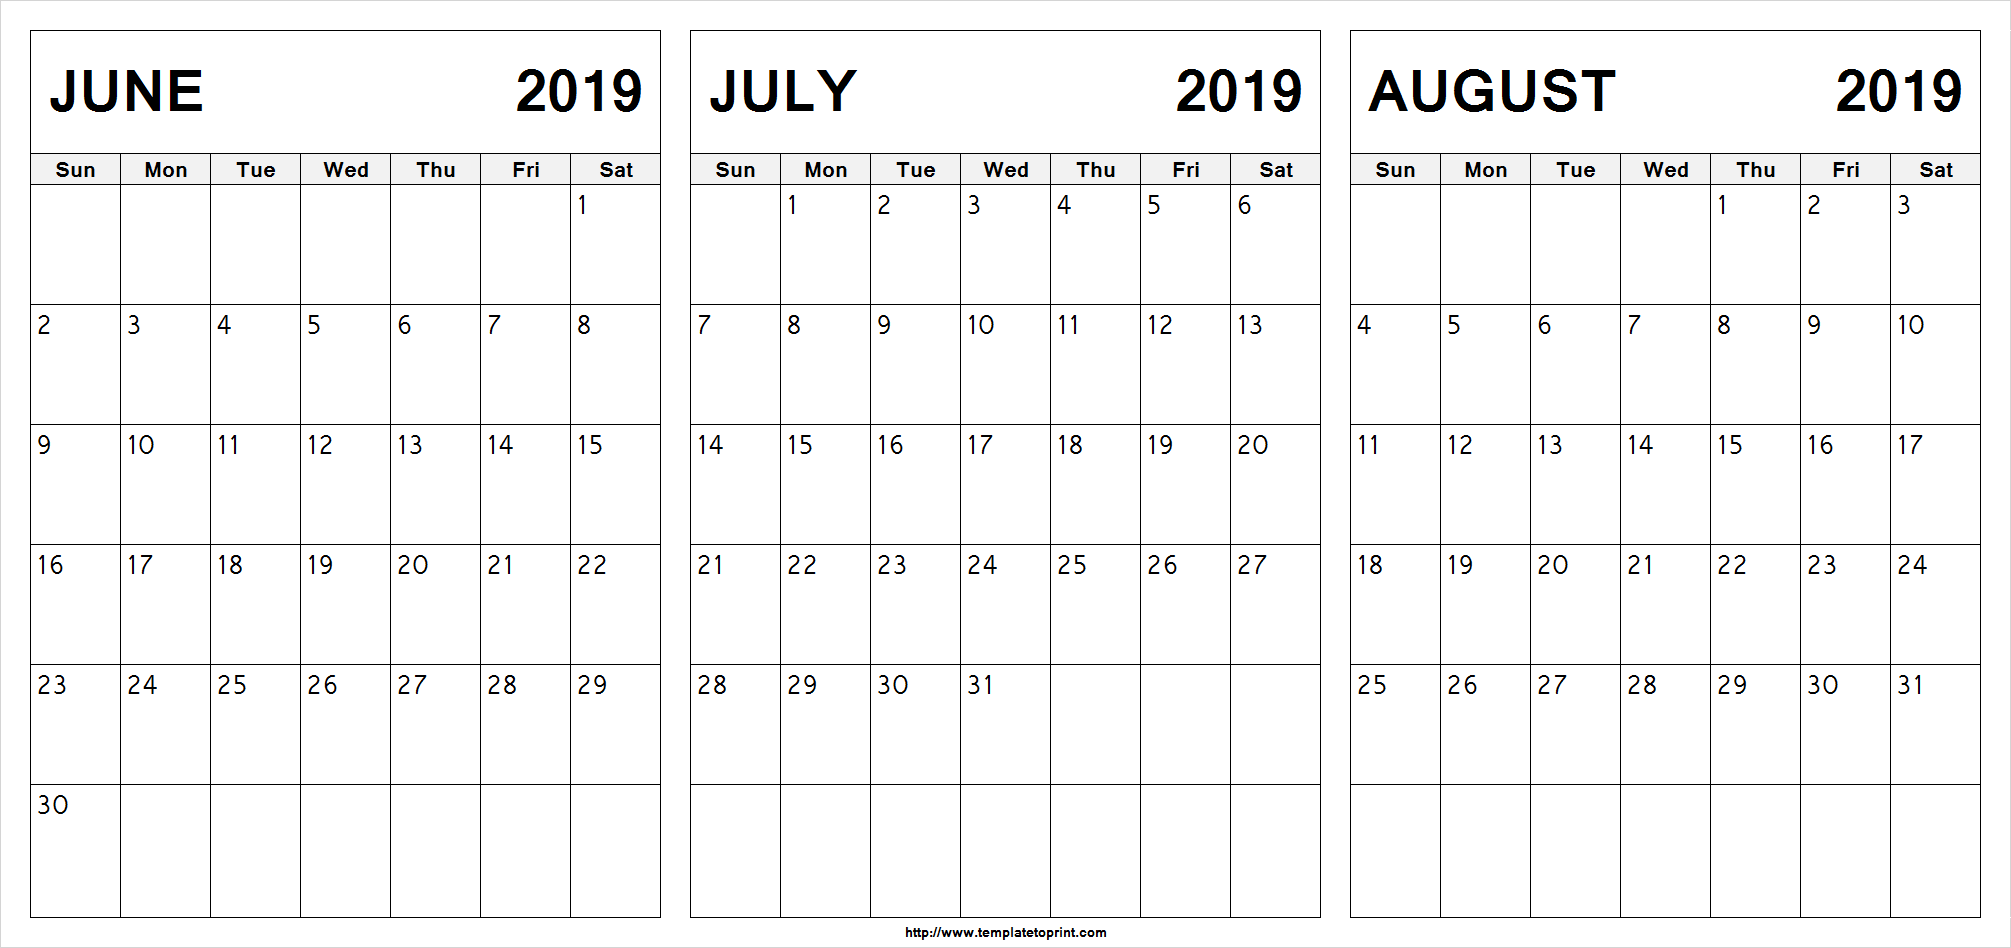 June July August 2019 Calendar Printable.Free June July August 2019 Calendar 3 Months Printable Template